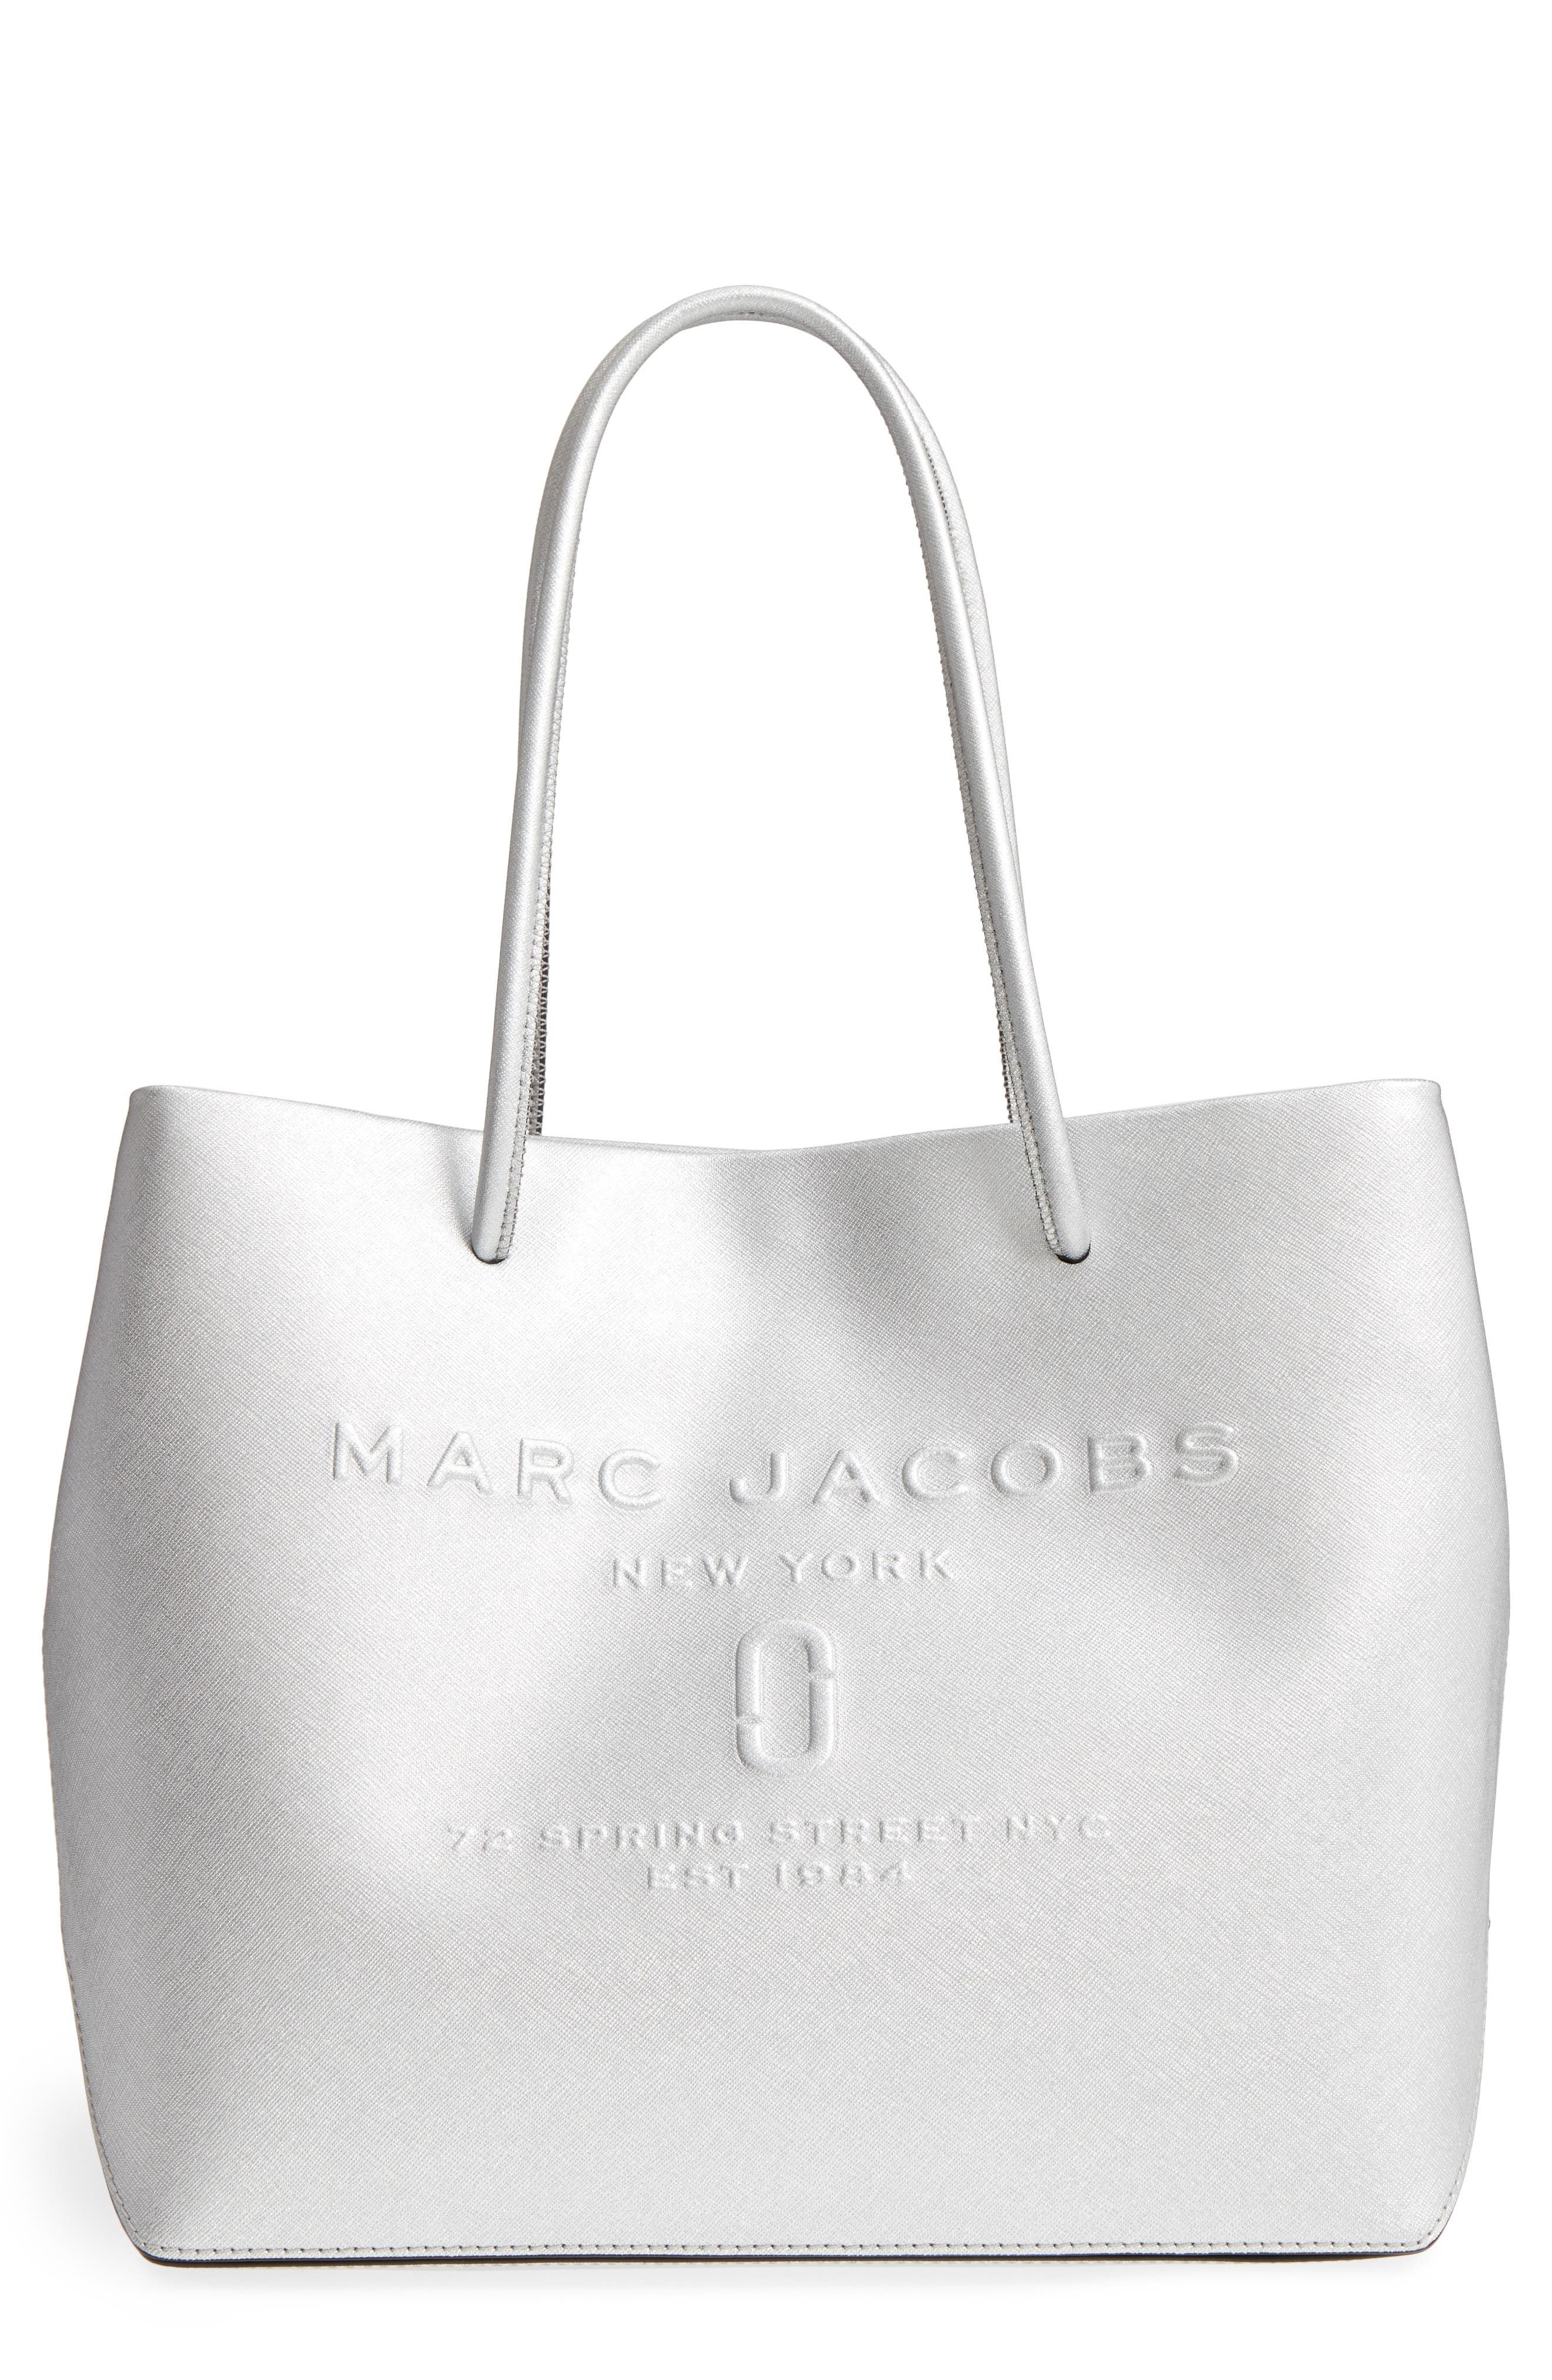 MARC JACOBS Leather Logo Shopper Tote. GOLD; SILVER